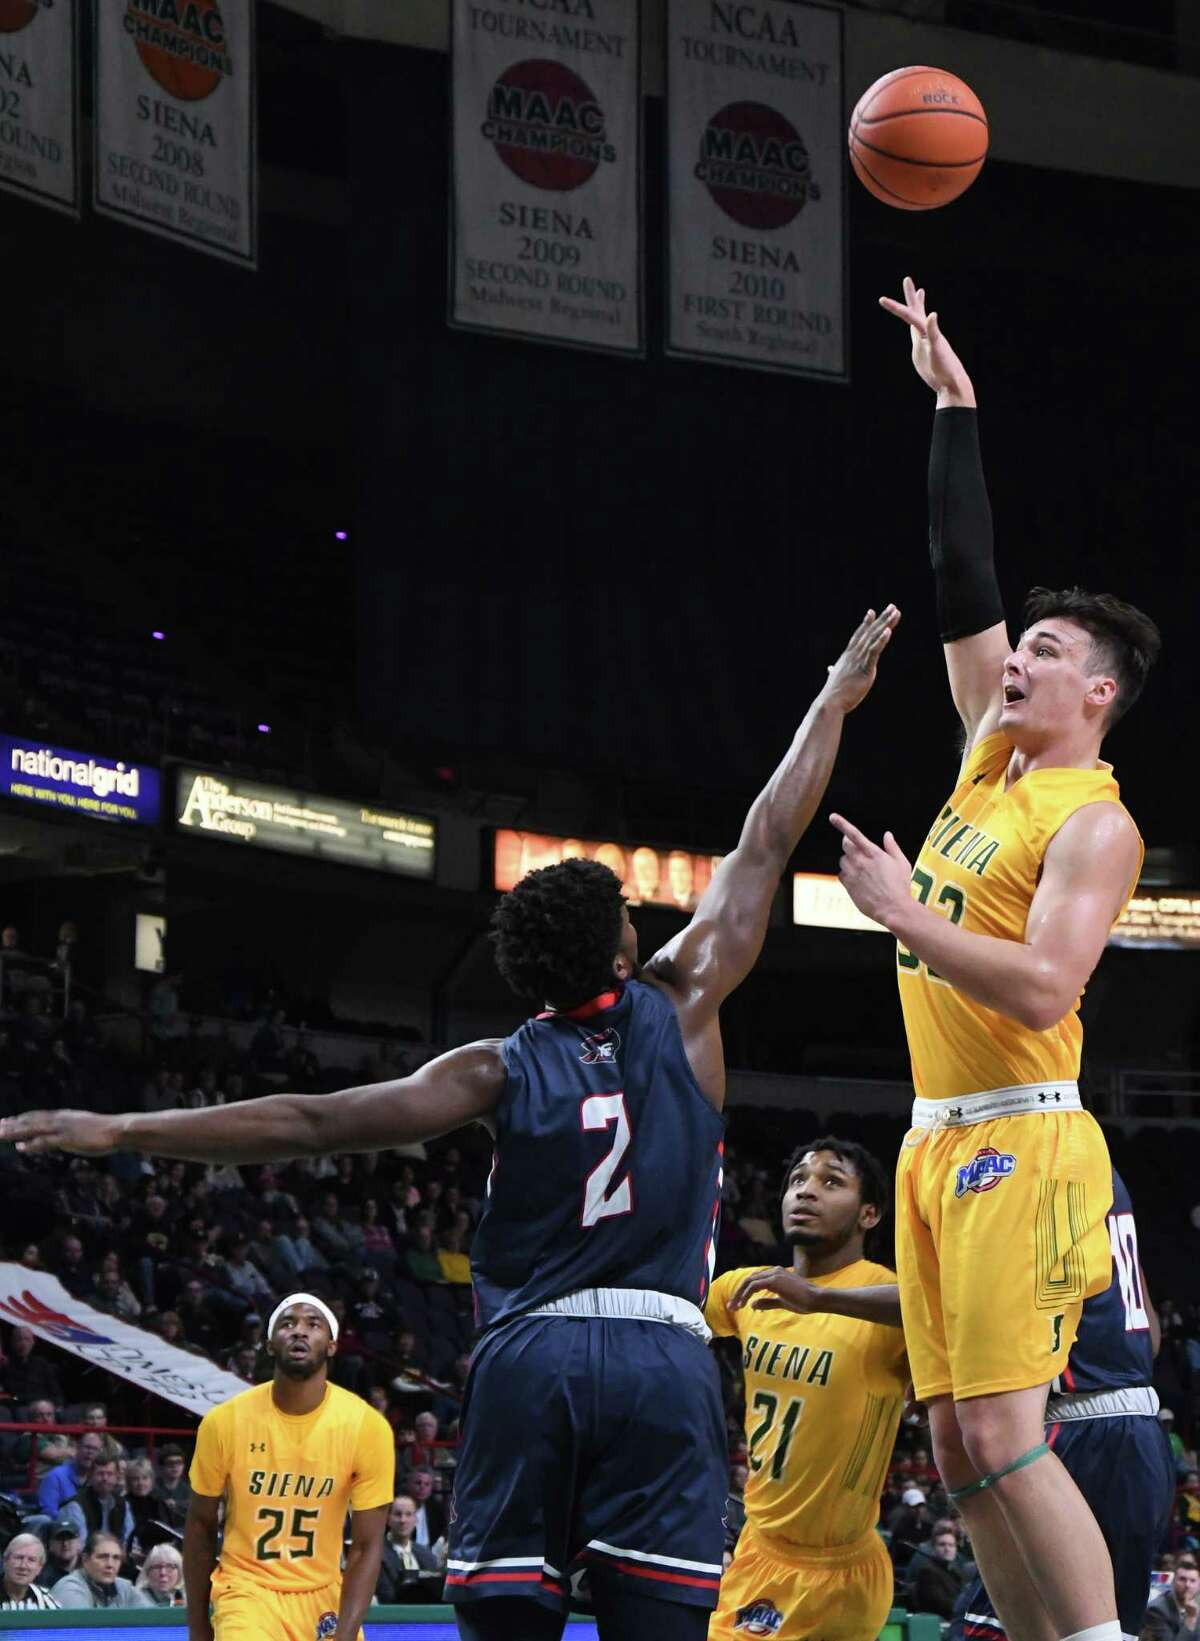 Siena forward Evan Fisher makes a shot during a non-conference game against Robert Morris on Saturday at the Times Union Center in Albany. Siena beat Robert Morris 76-74. (Jenn March/Special to the Times Union)